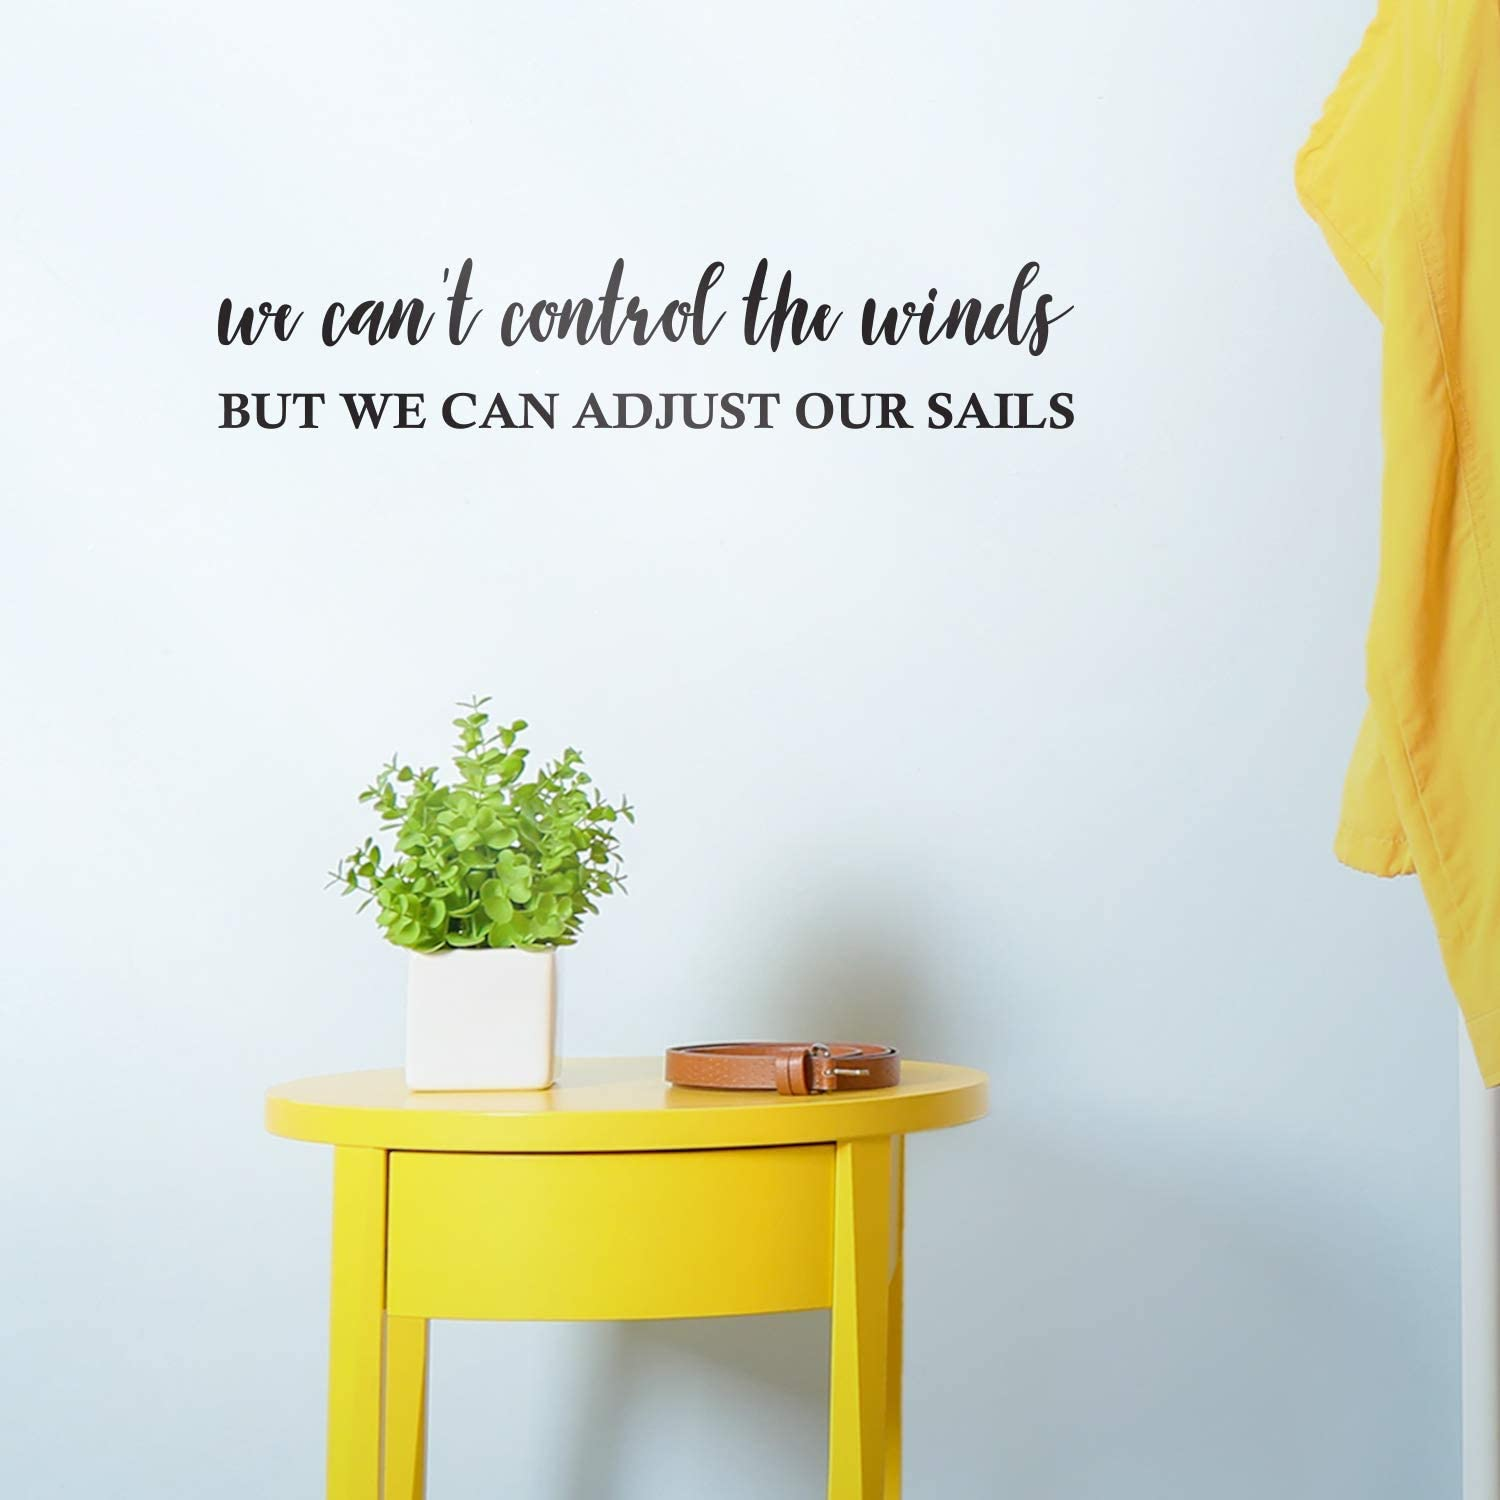 Vinyl Wall Art Decal - We Can't Control The Winds But We Can Adjust Our Sails - 4